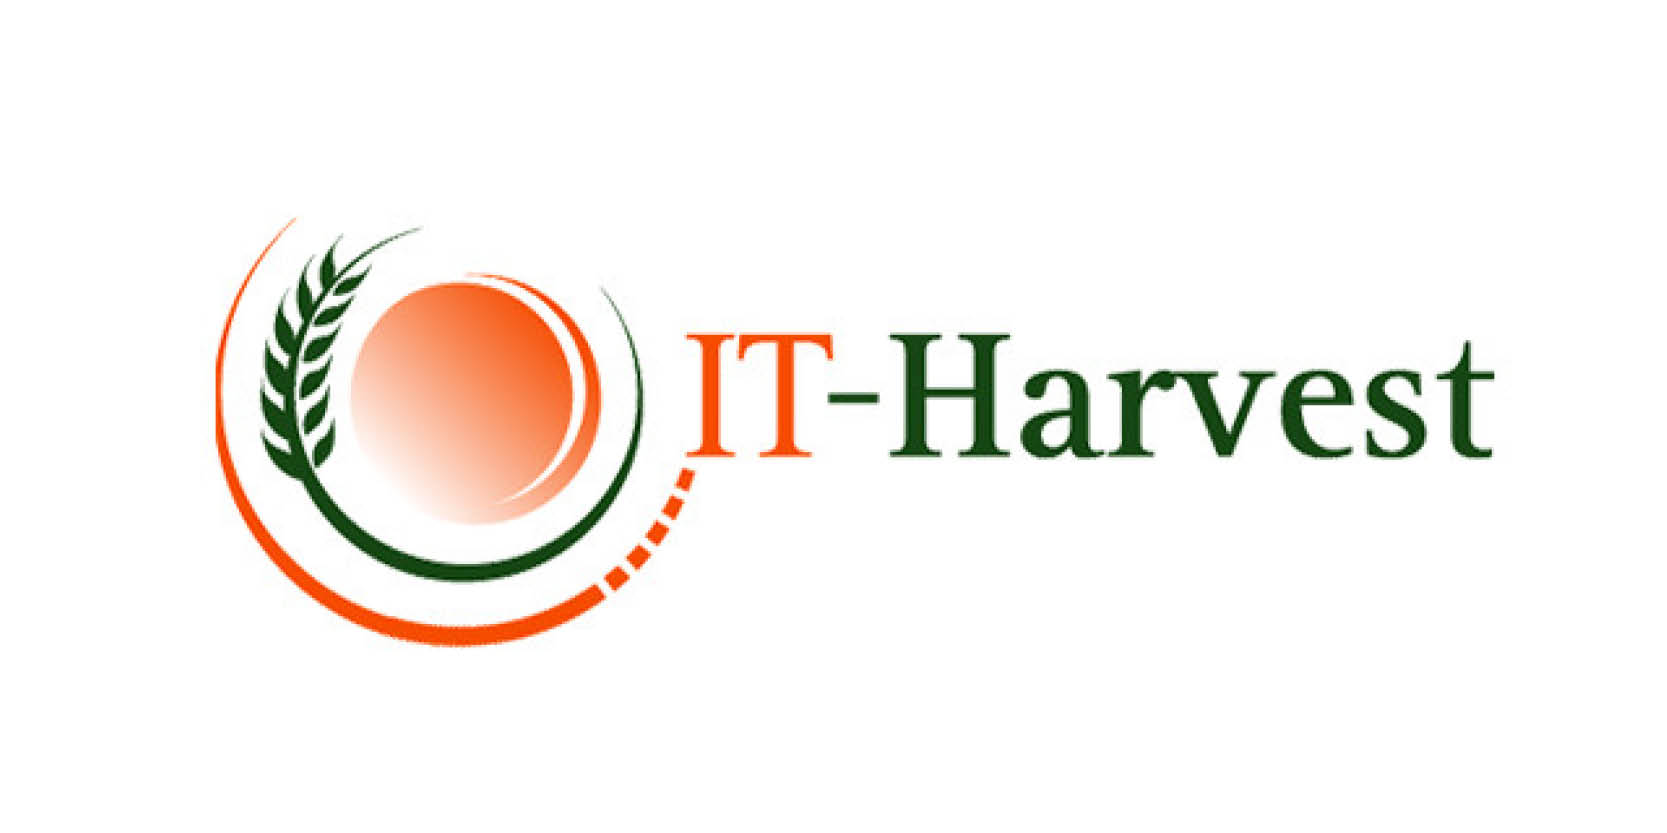 IT-Harvest: Digital Shadows' James Chappell Discusses Threat Intelligence, Cyber Situational Awareness, and More